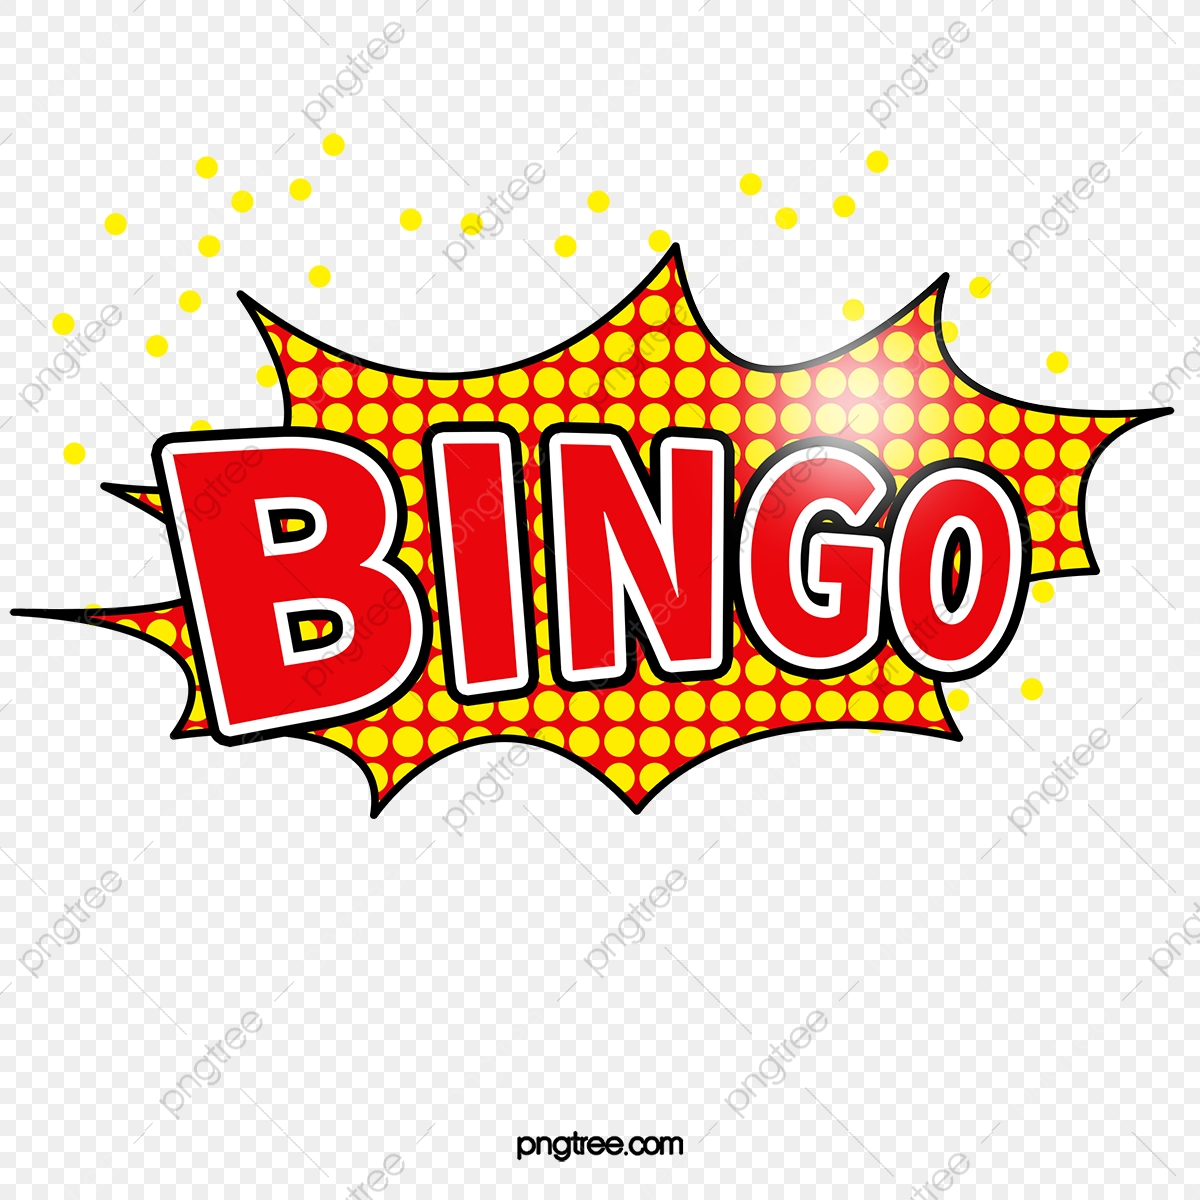 Bingo, Cloud Explosion, Red PNG Transparent Clipart Image and PSD.